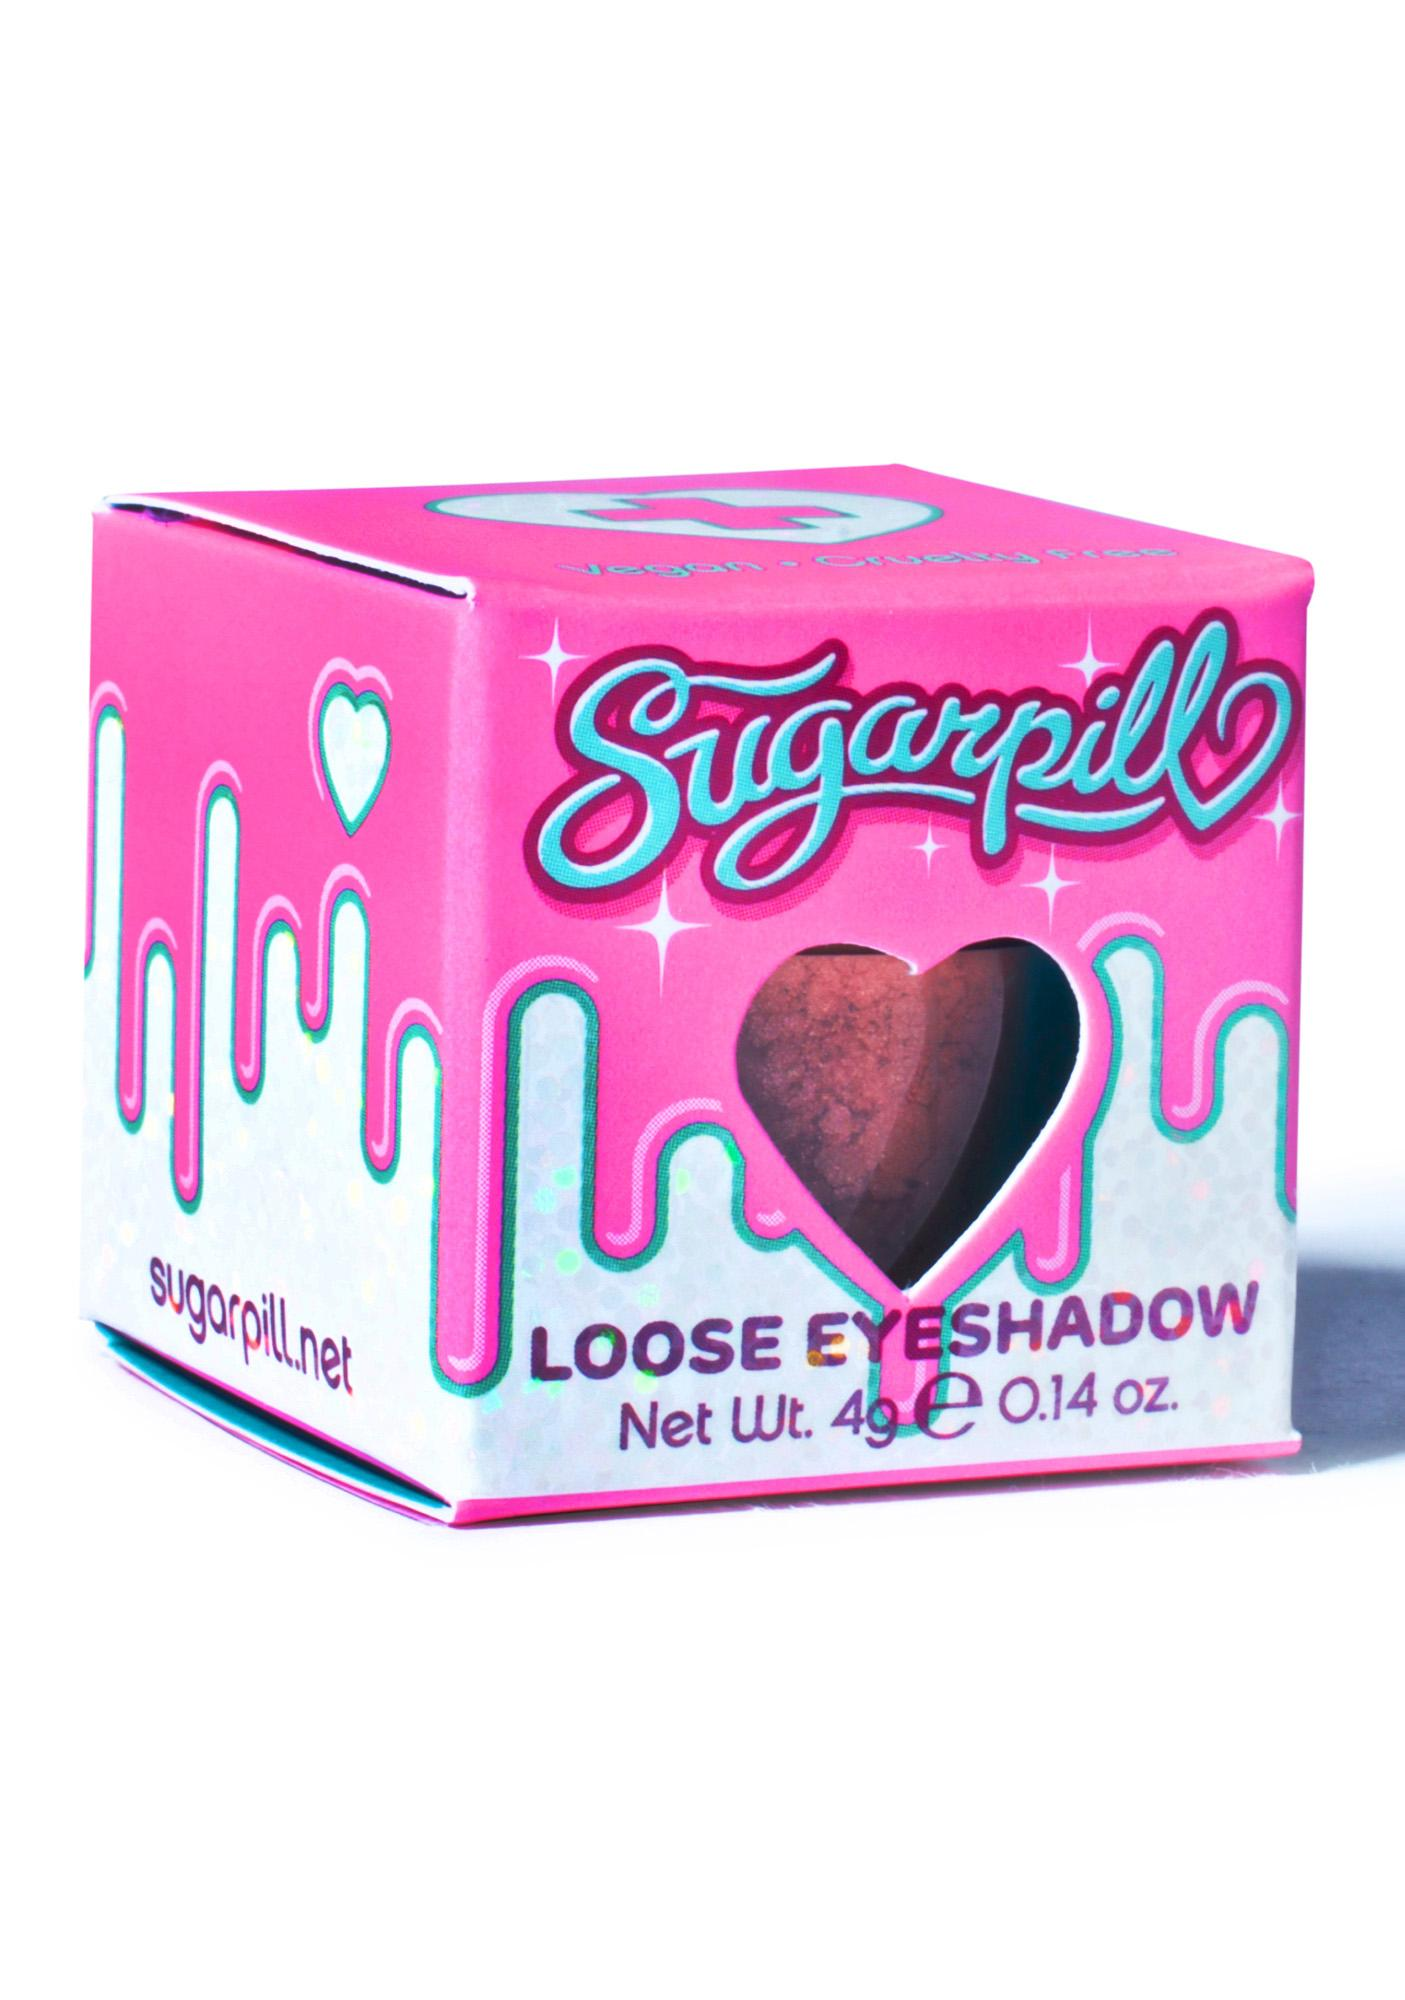 Sugarpill Charmy Loose Eyeshadow